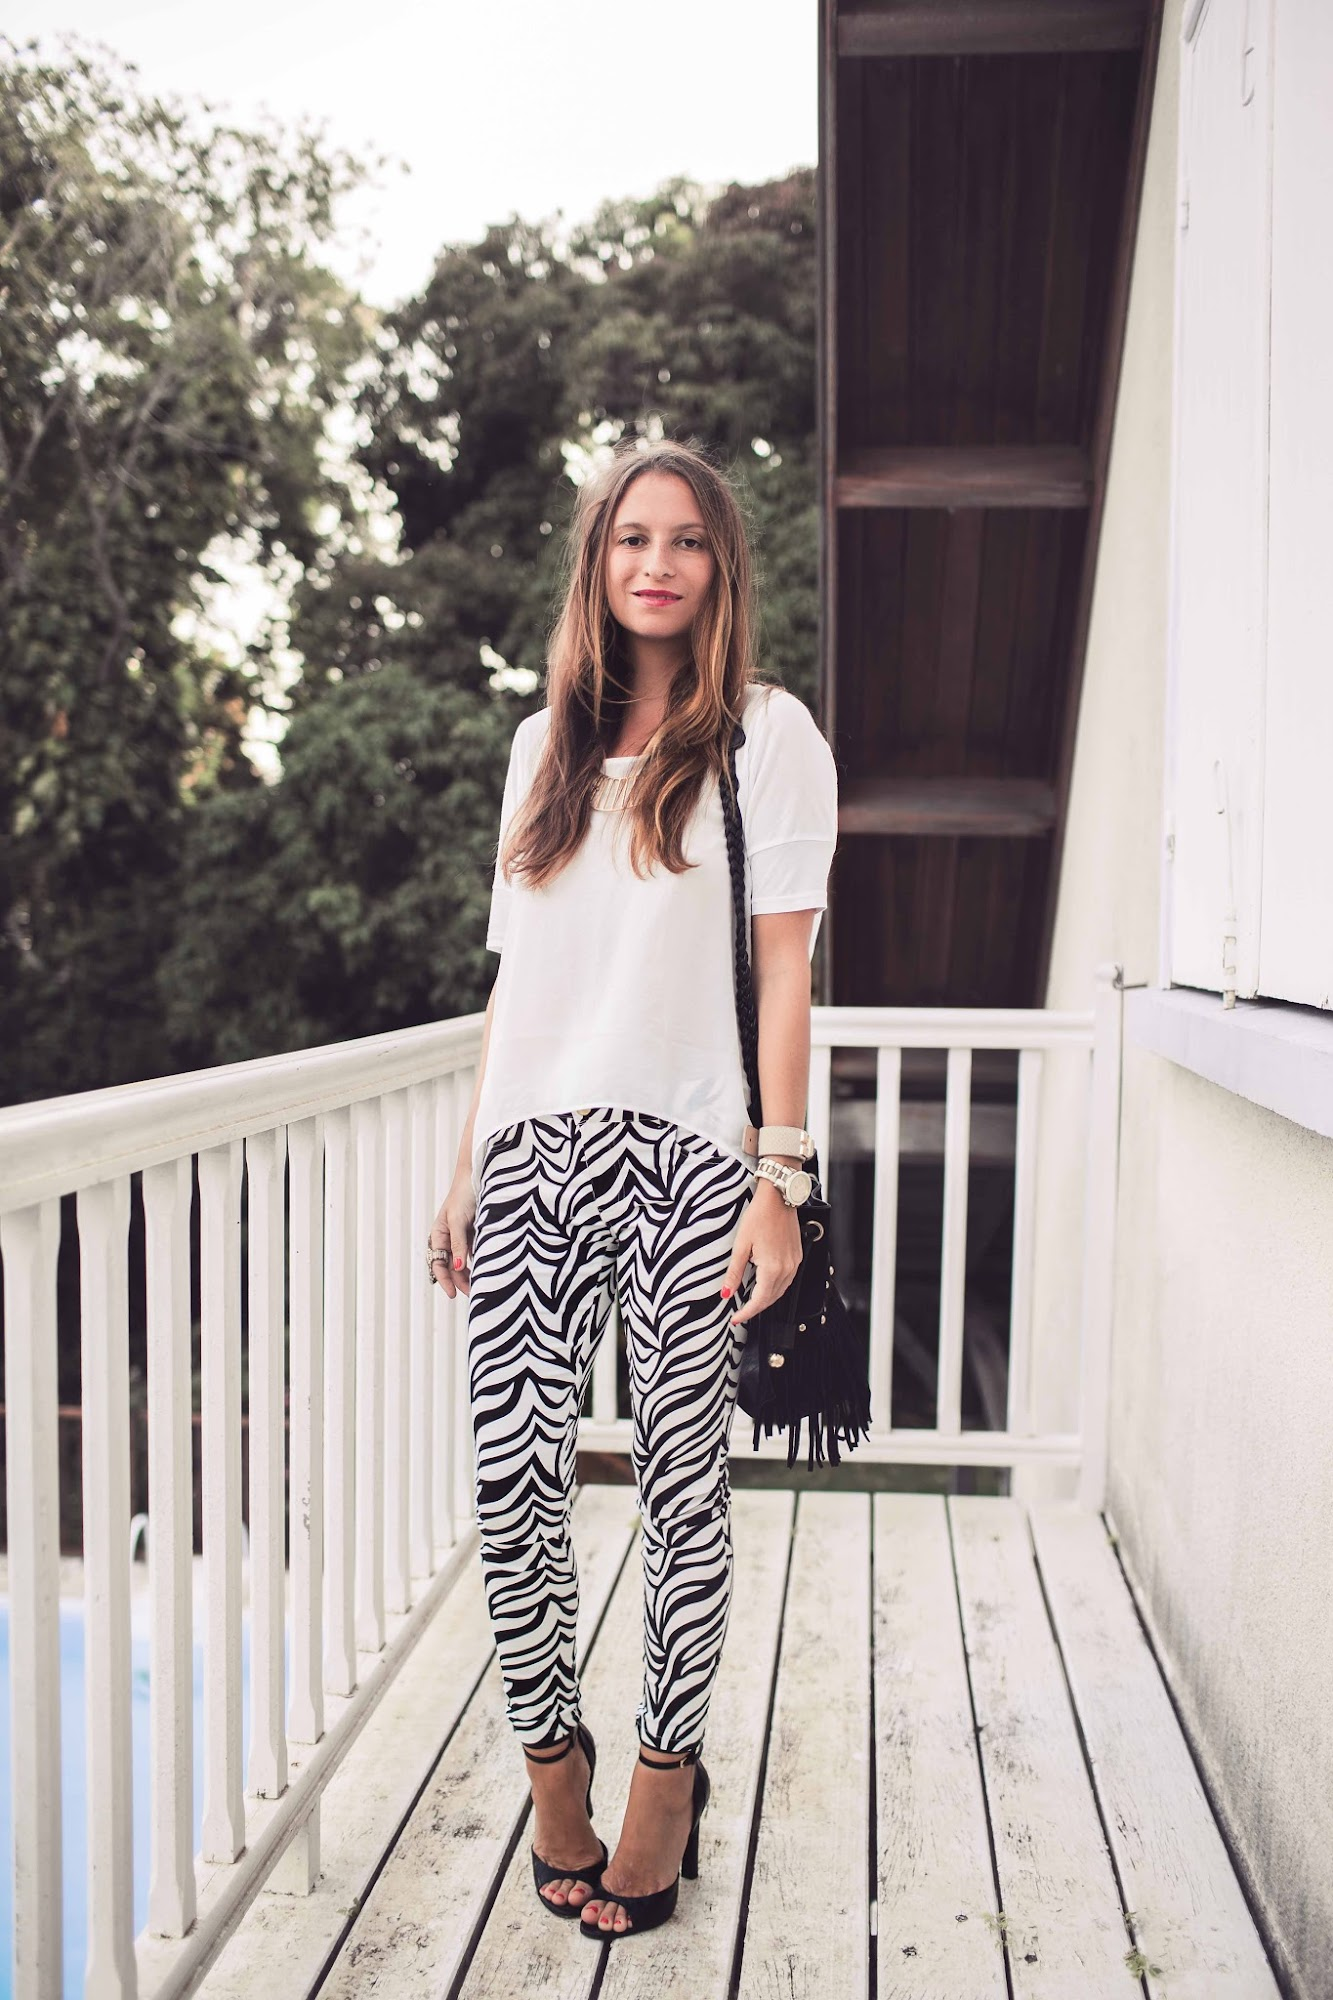 Blog mode, vetements fashion, fashion blog -ZEBRA - 1